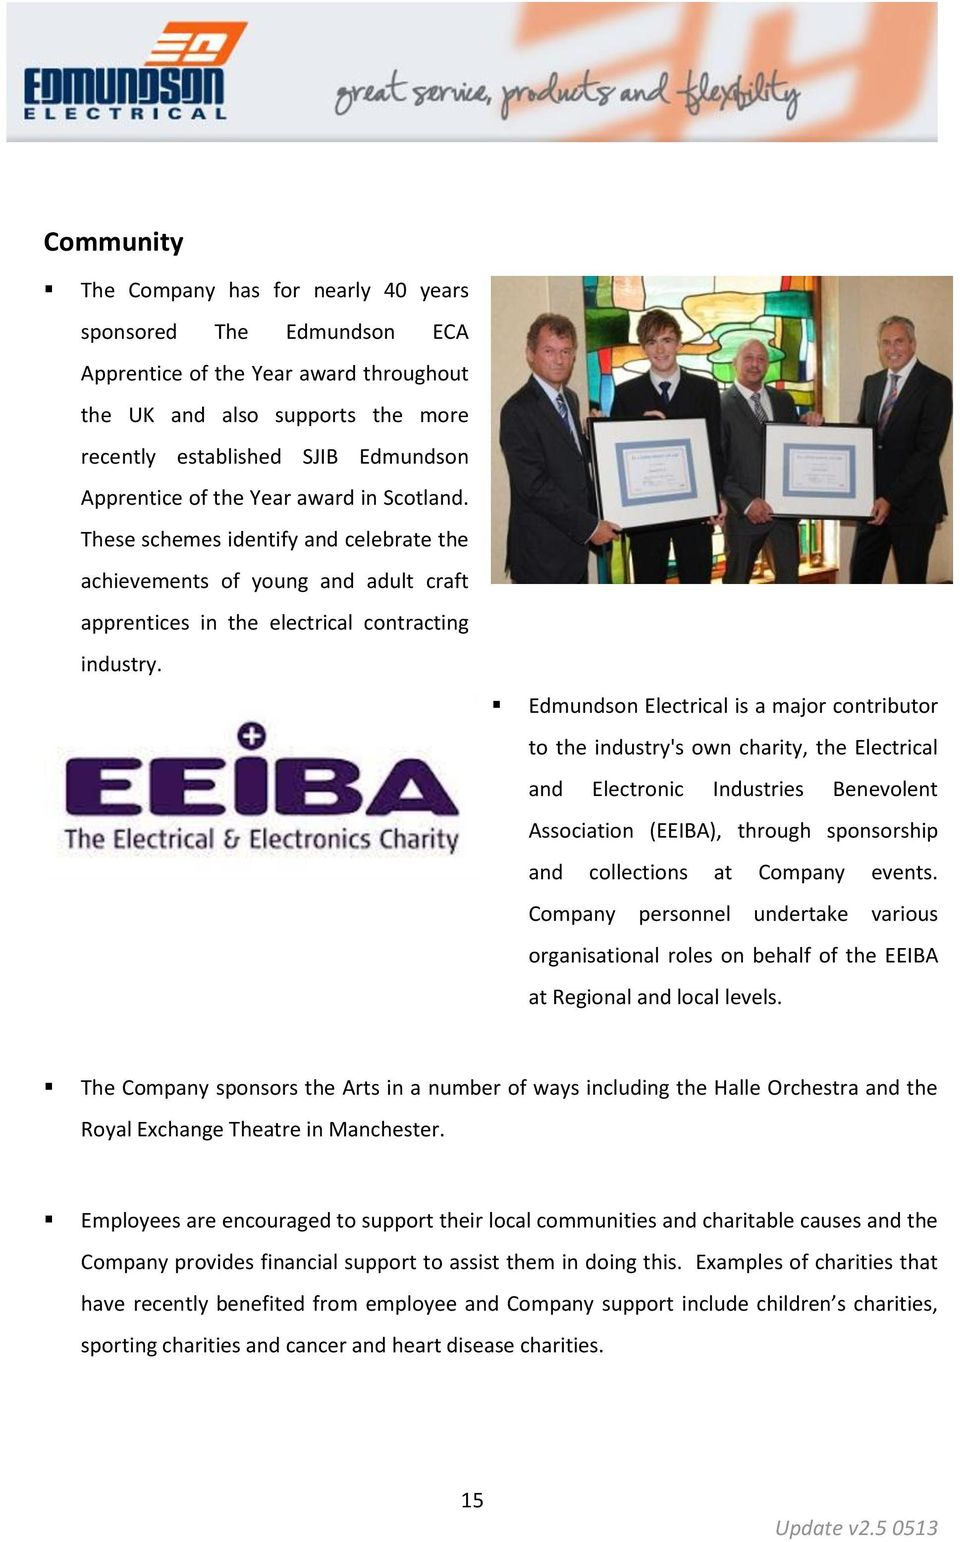 Edmundson Electrical is a major contributor to the industry's own charity, the Electrical and Electronic Industries Benevolent Association (EEIBA), through sponsorship and collections at Company